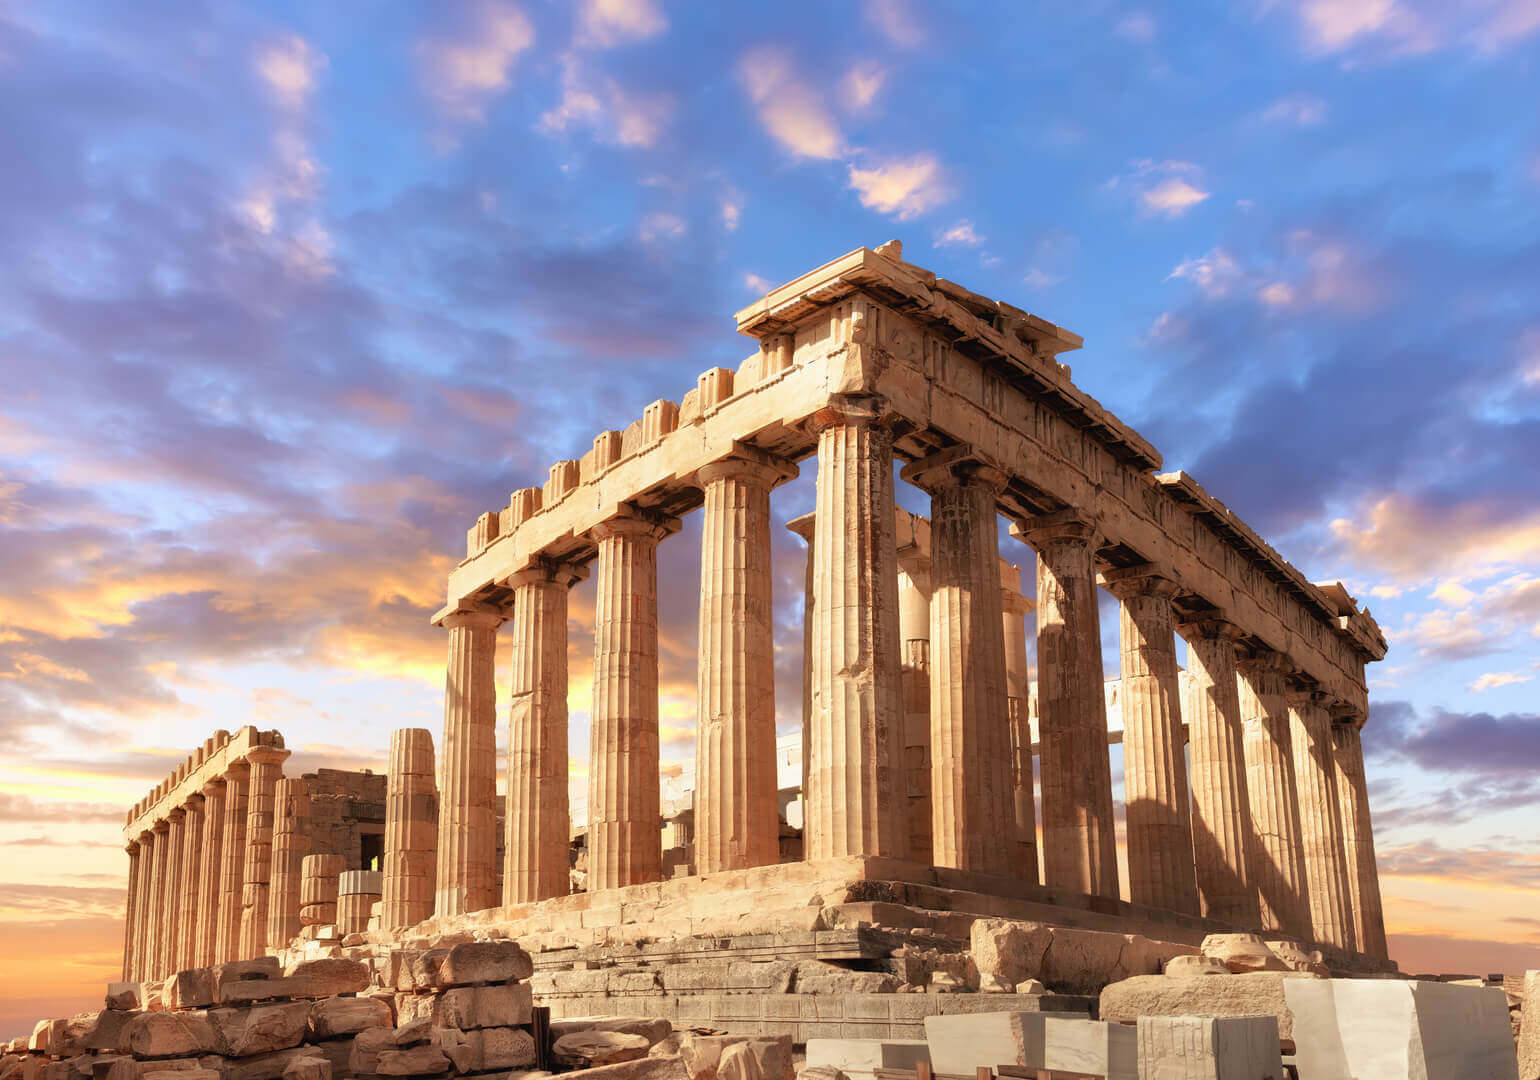 Parthenon temple on a sunset. Acropolis in Athens, Greece.